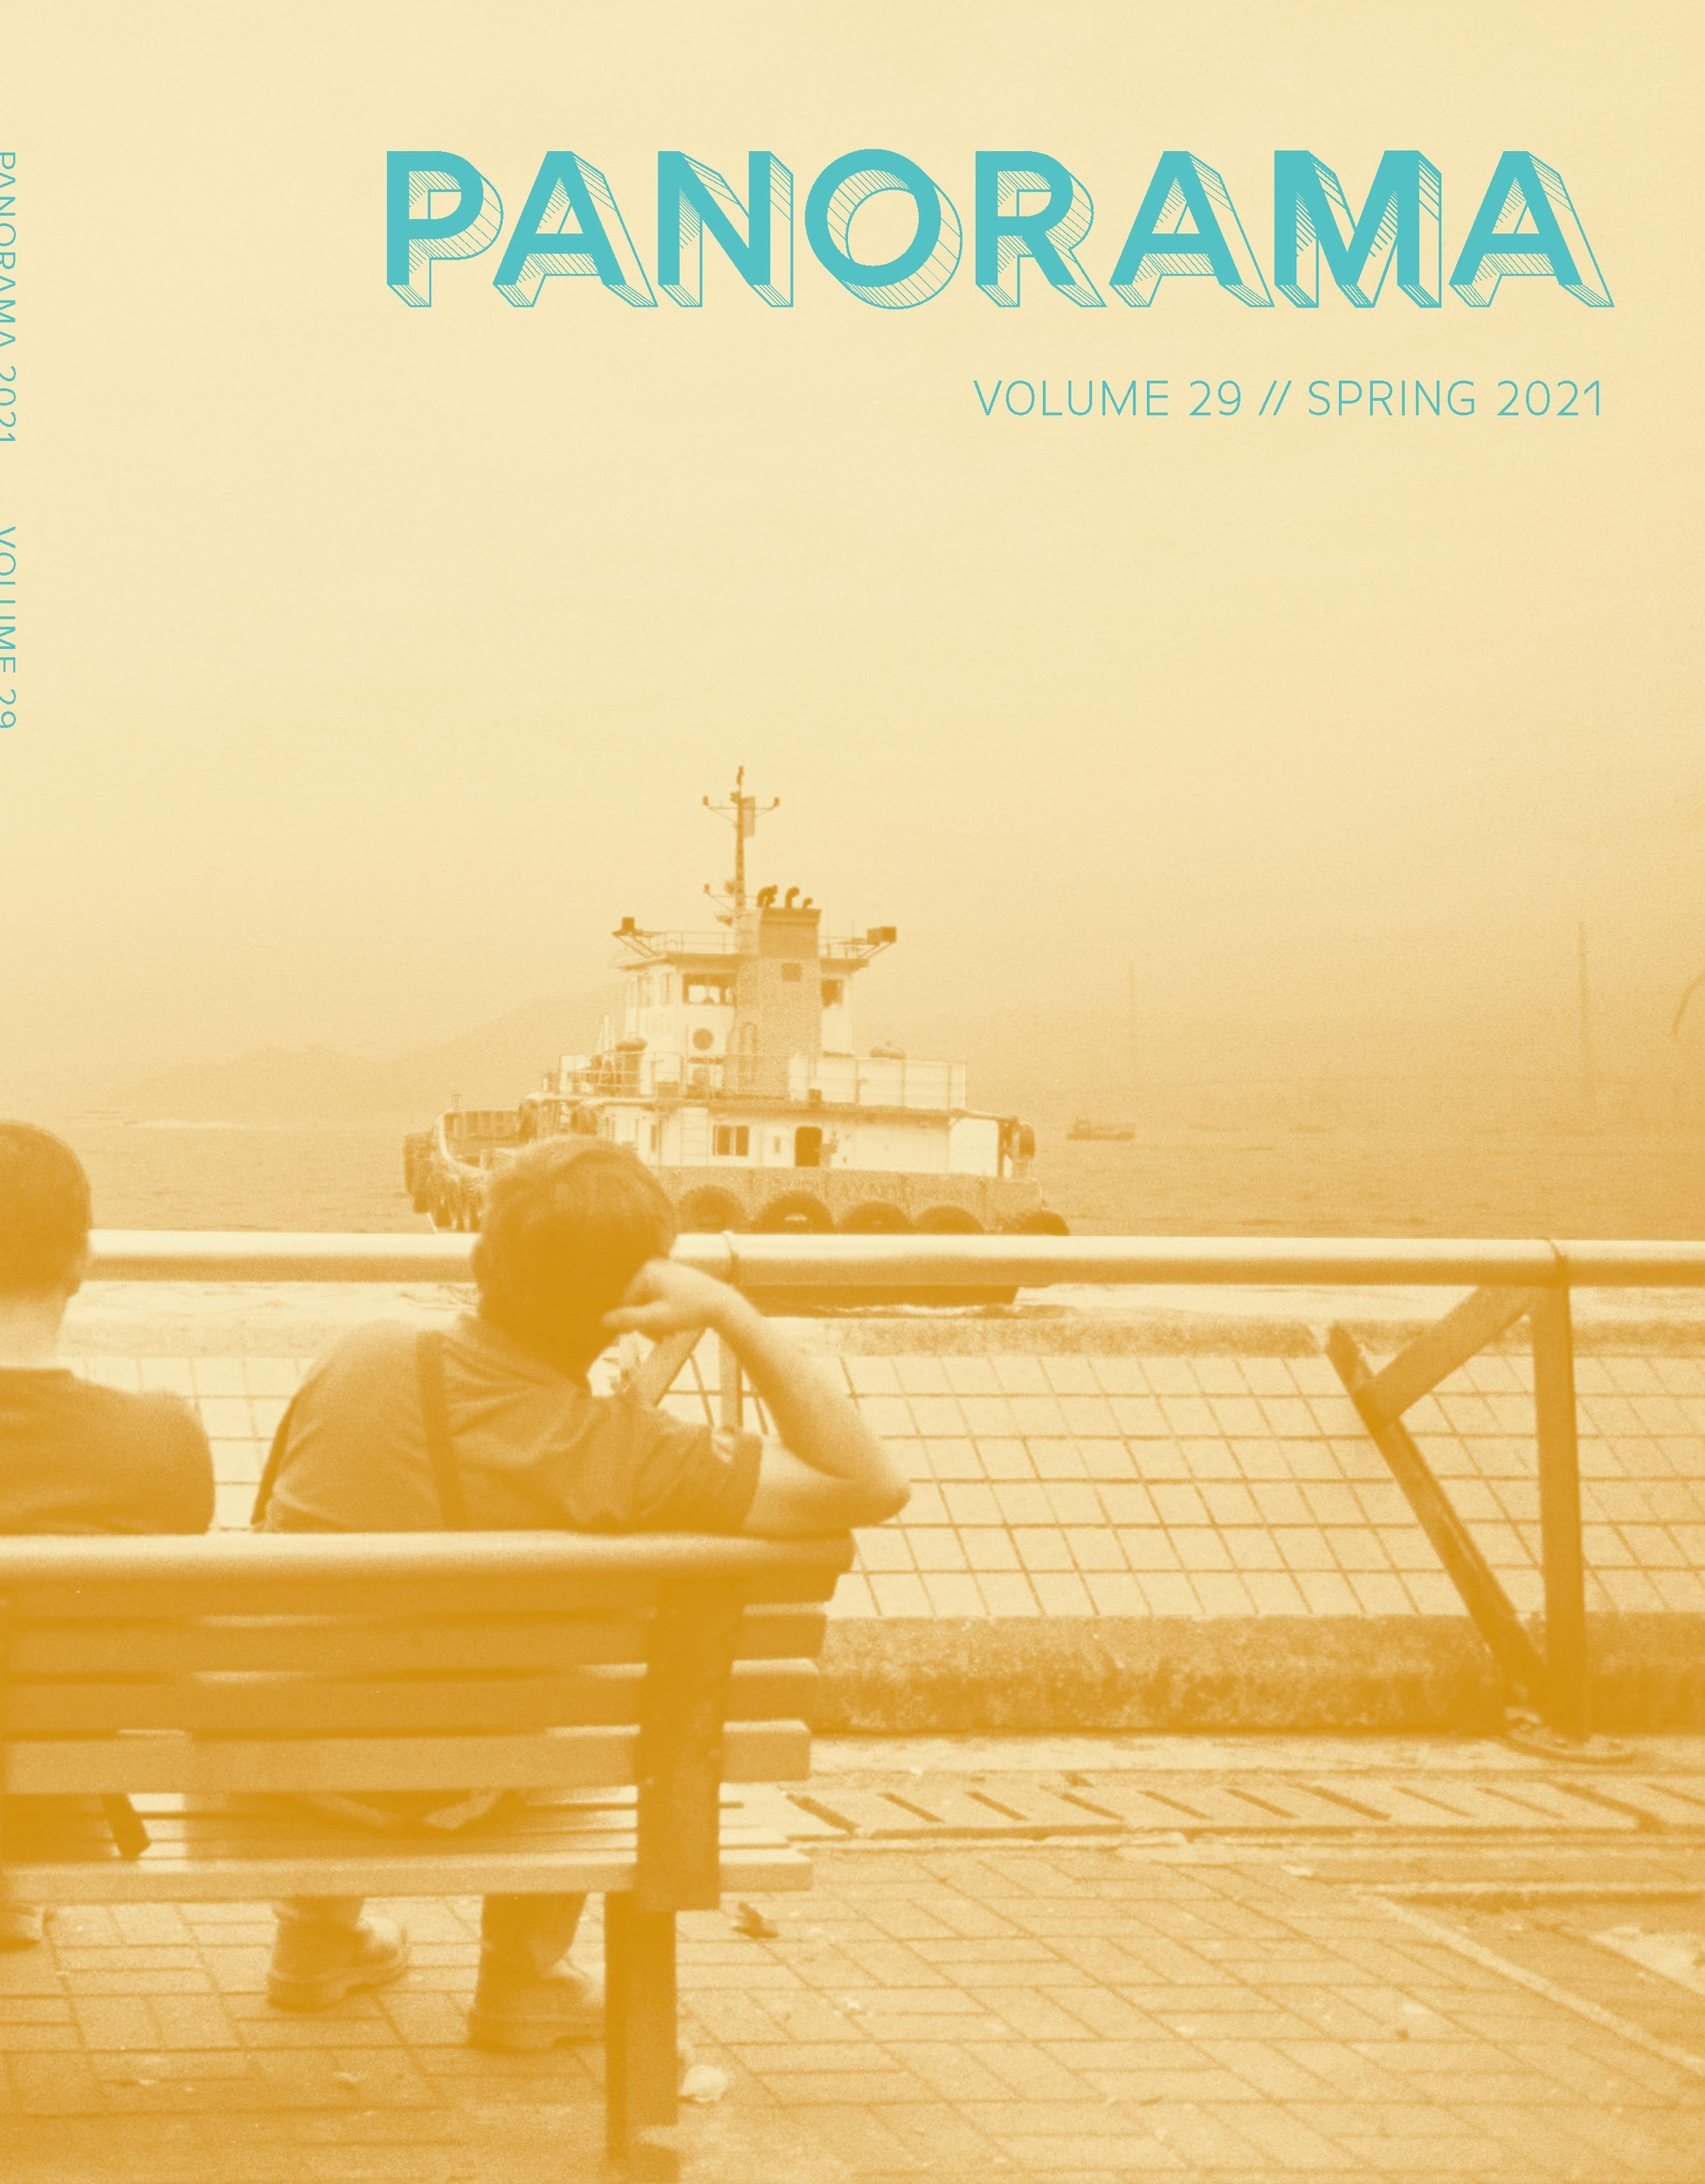 cover of Panorama journal